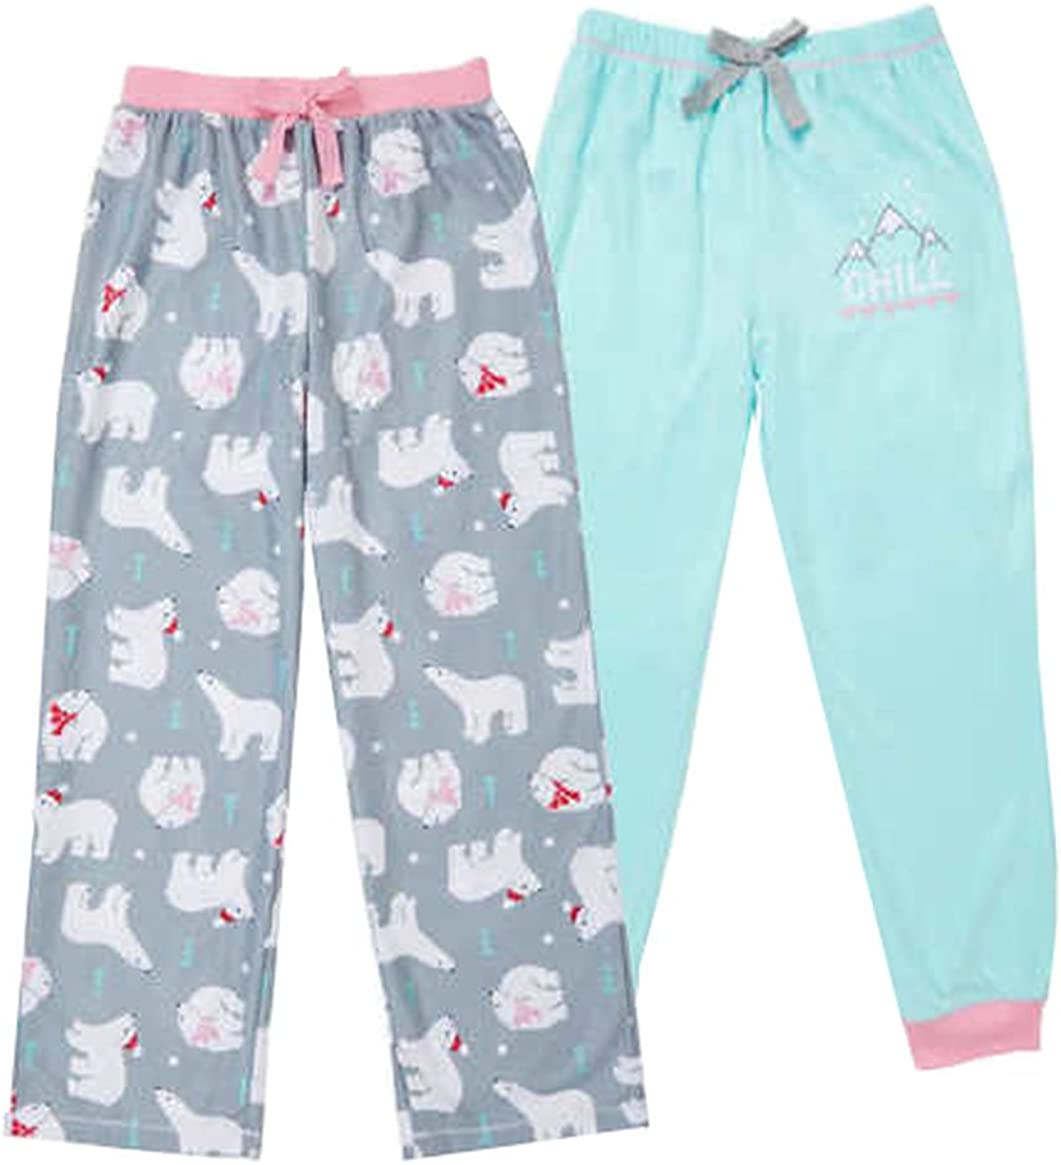 Color Light Green Saint Eve 2 Pack Kids Sleep Pant Flame Resistant Solid /& Print Size Grey. 7